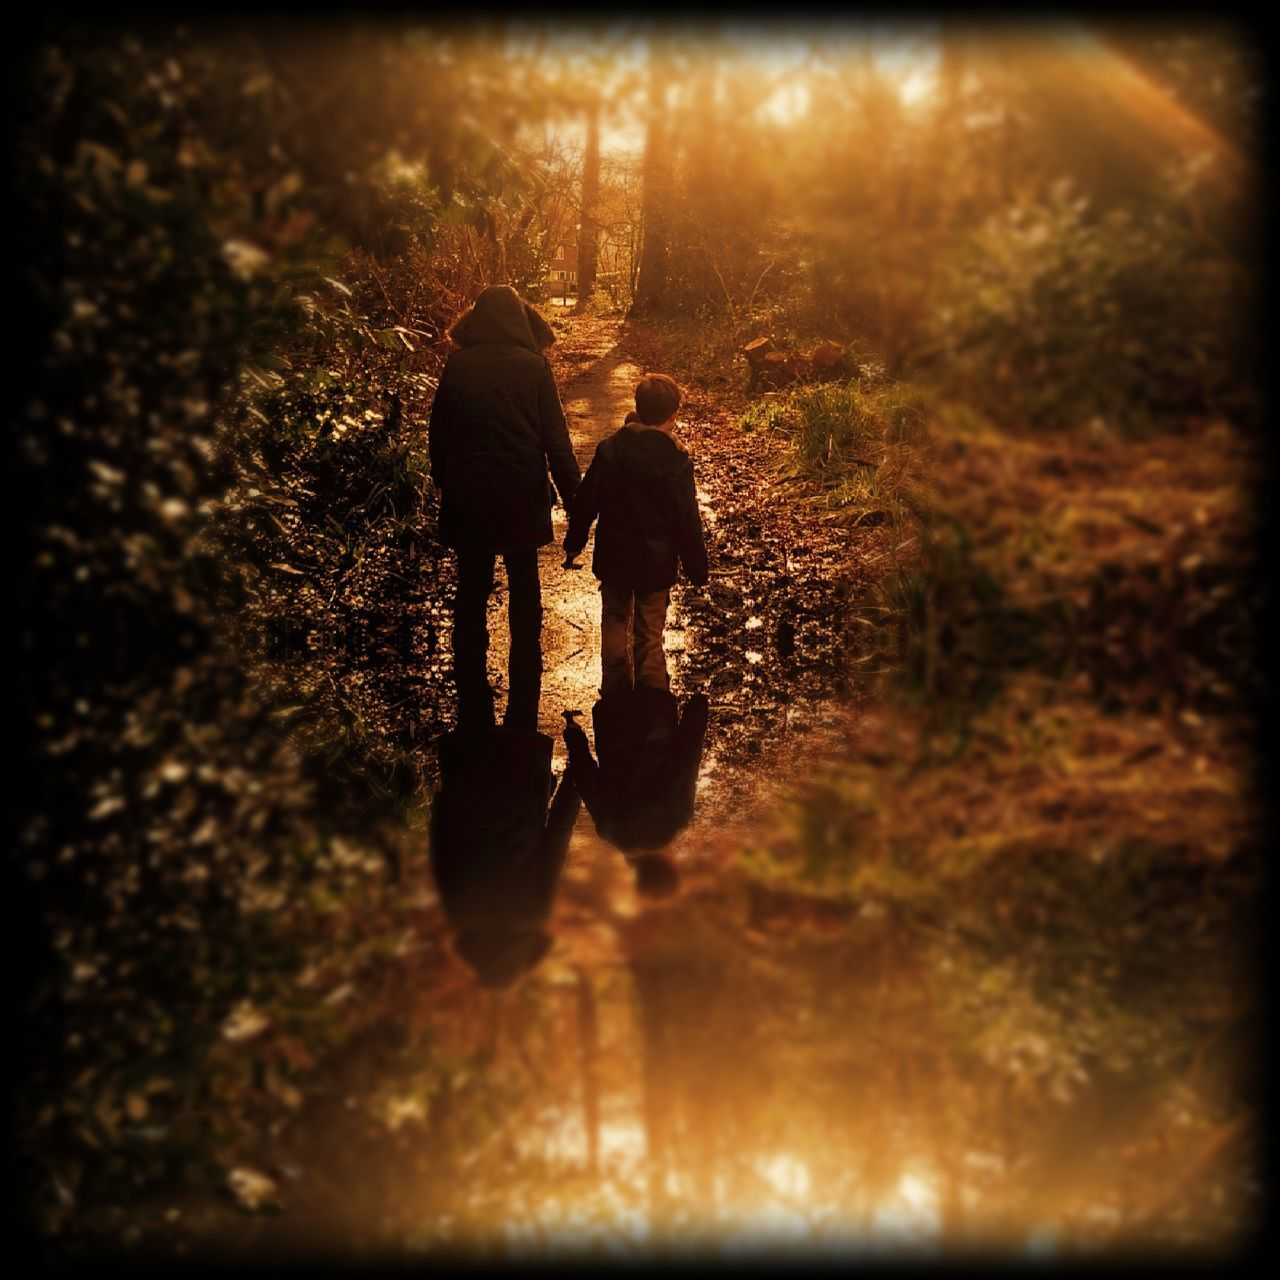 togetherness, walking, two people, rear view, full length, forest, real people, nature, childhood, tree, men, bonding, adventure, friendship, boys, outdoors, child, grass, day, people